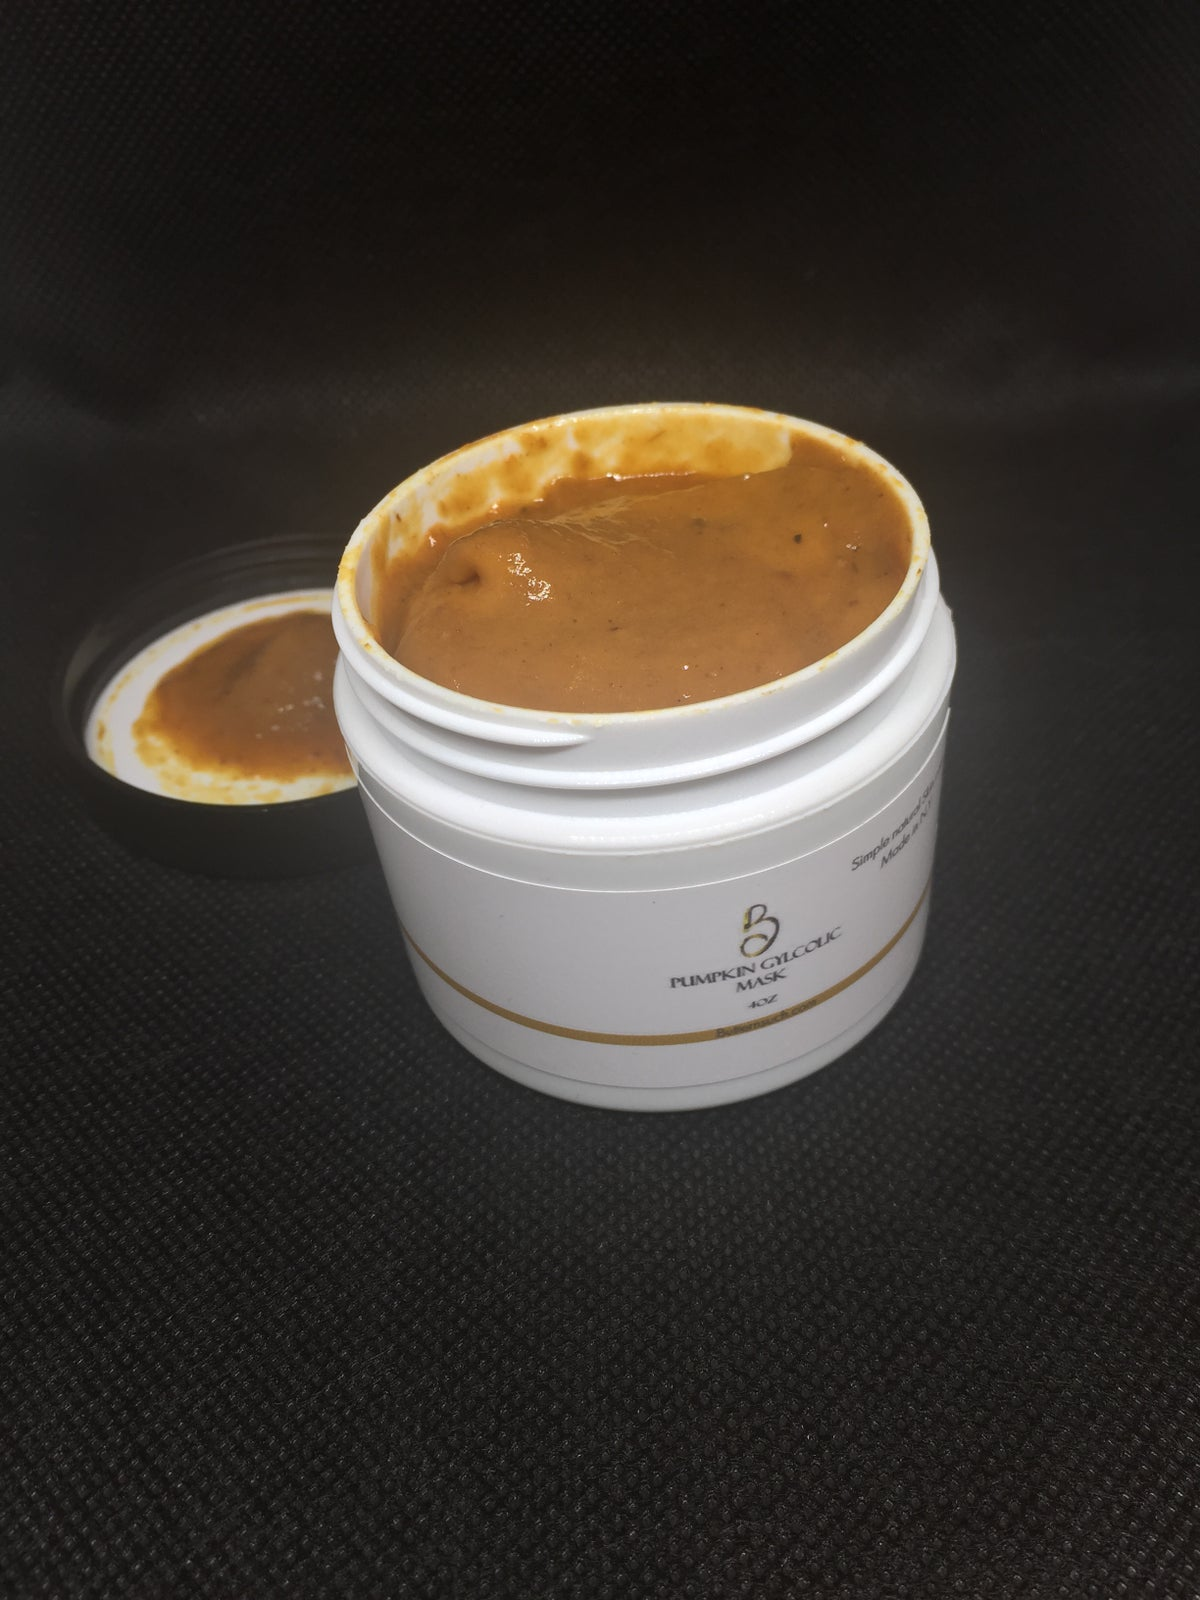 Image of Pumpkin glycolic mask